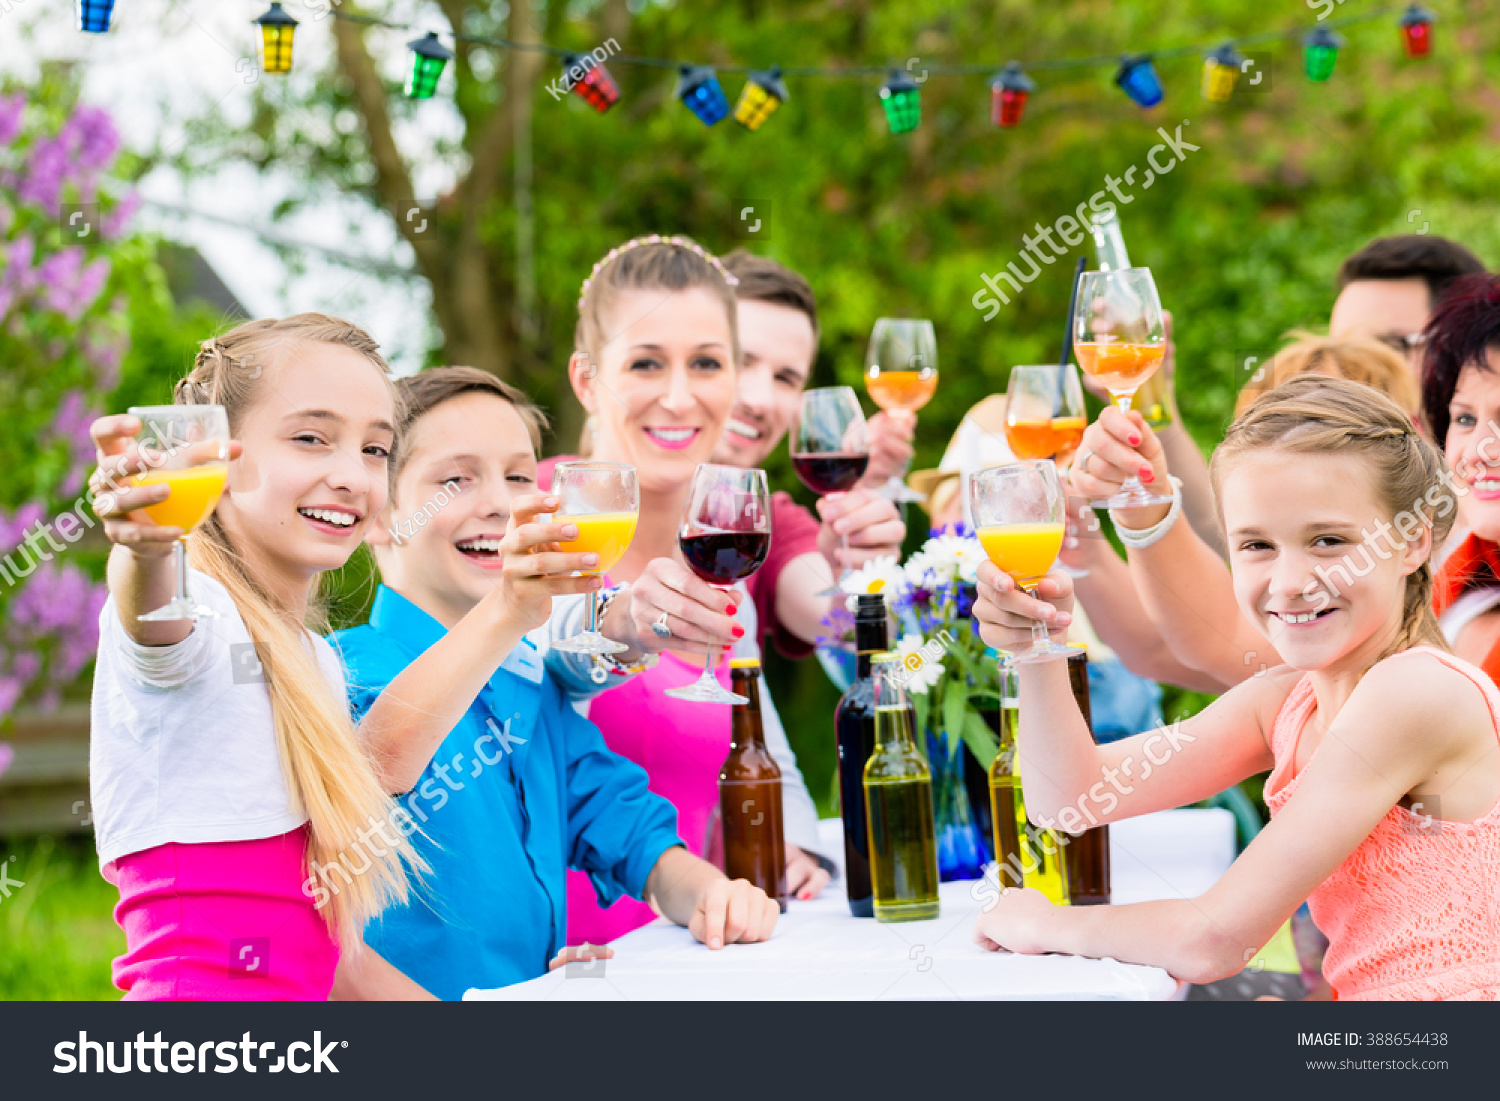 Friends and neighbors toasting on garden party #388654438